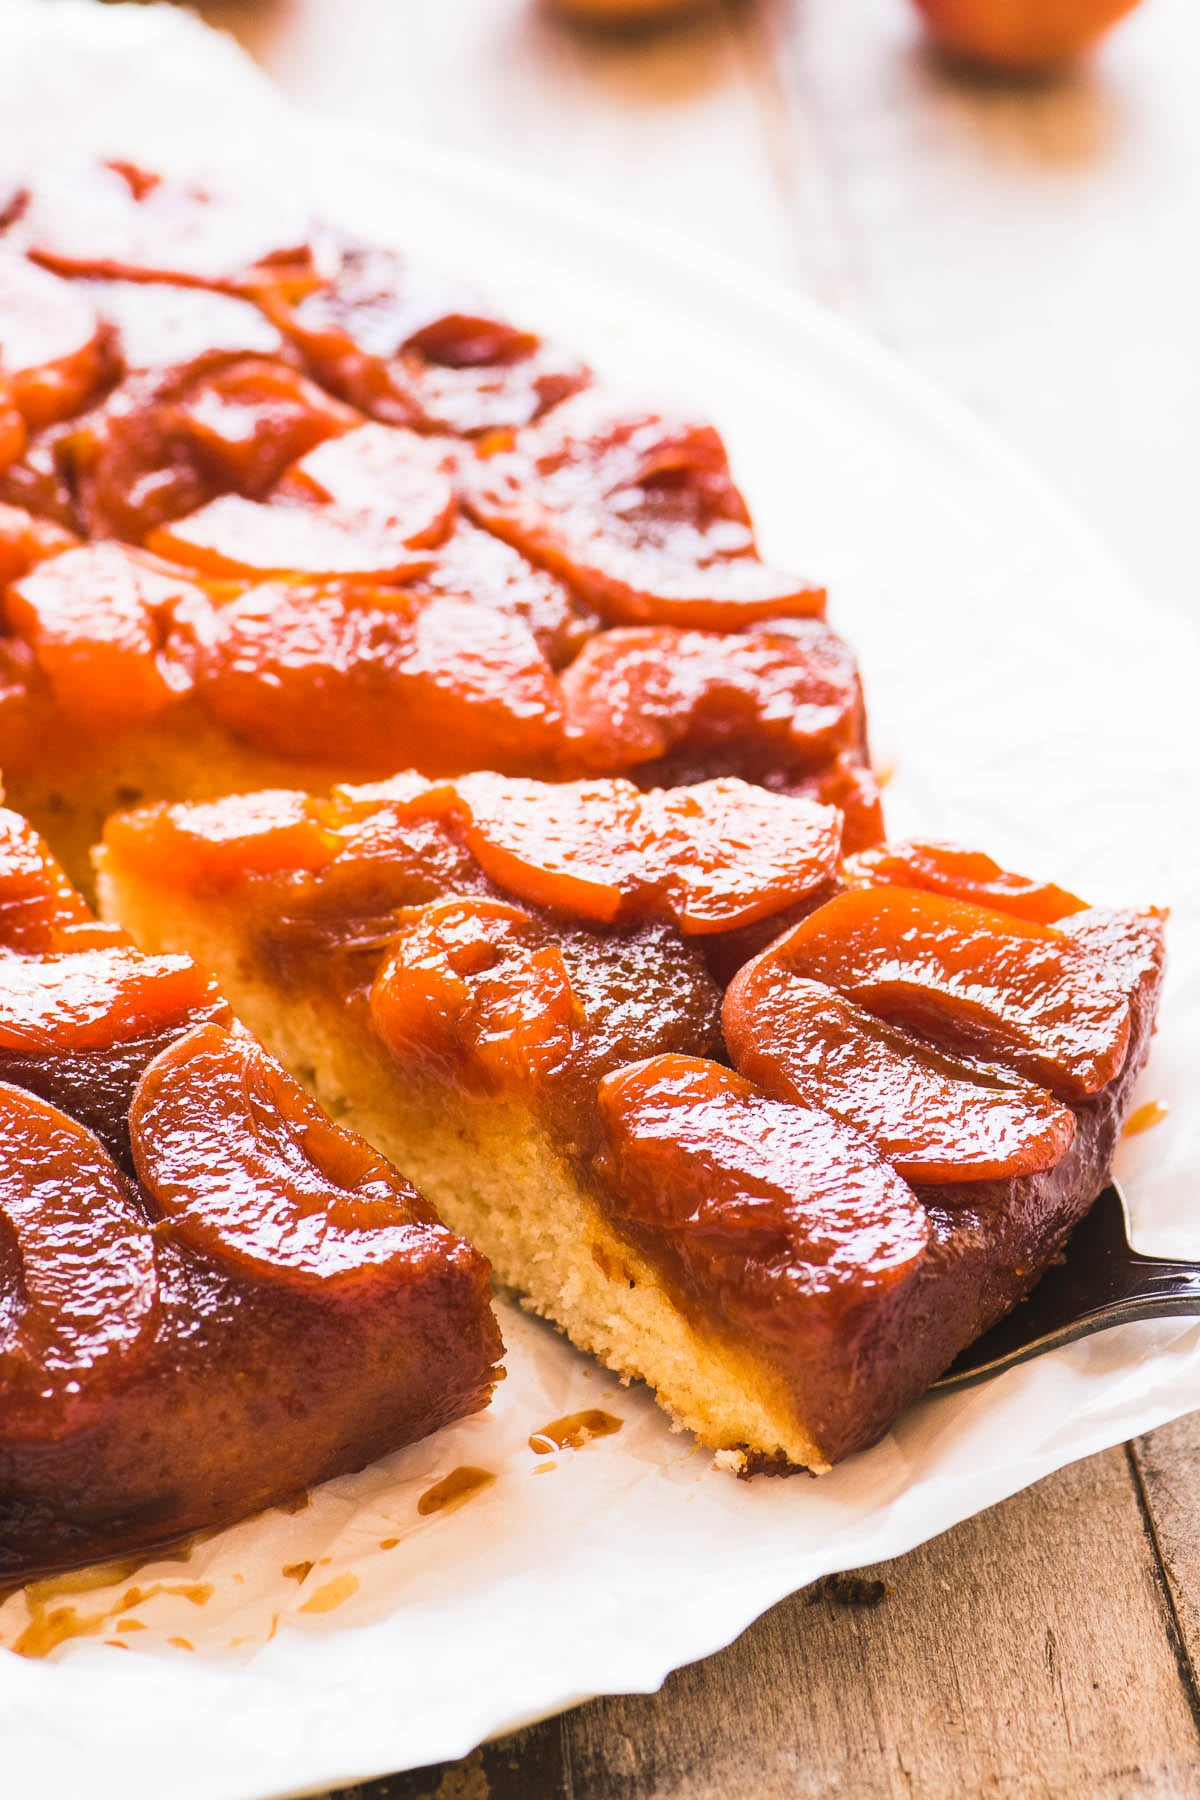 A slice being removed from a caramelized apricot upside down cake